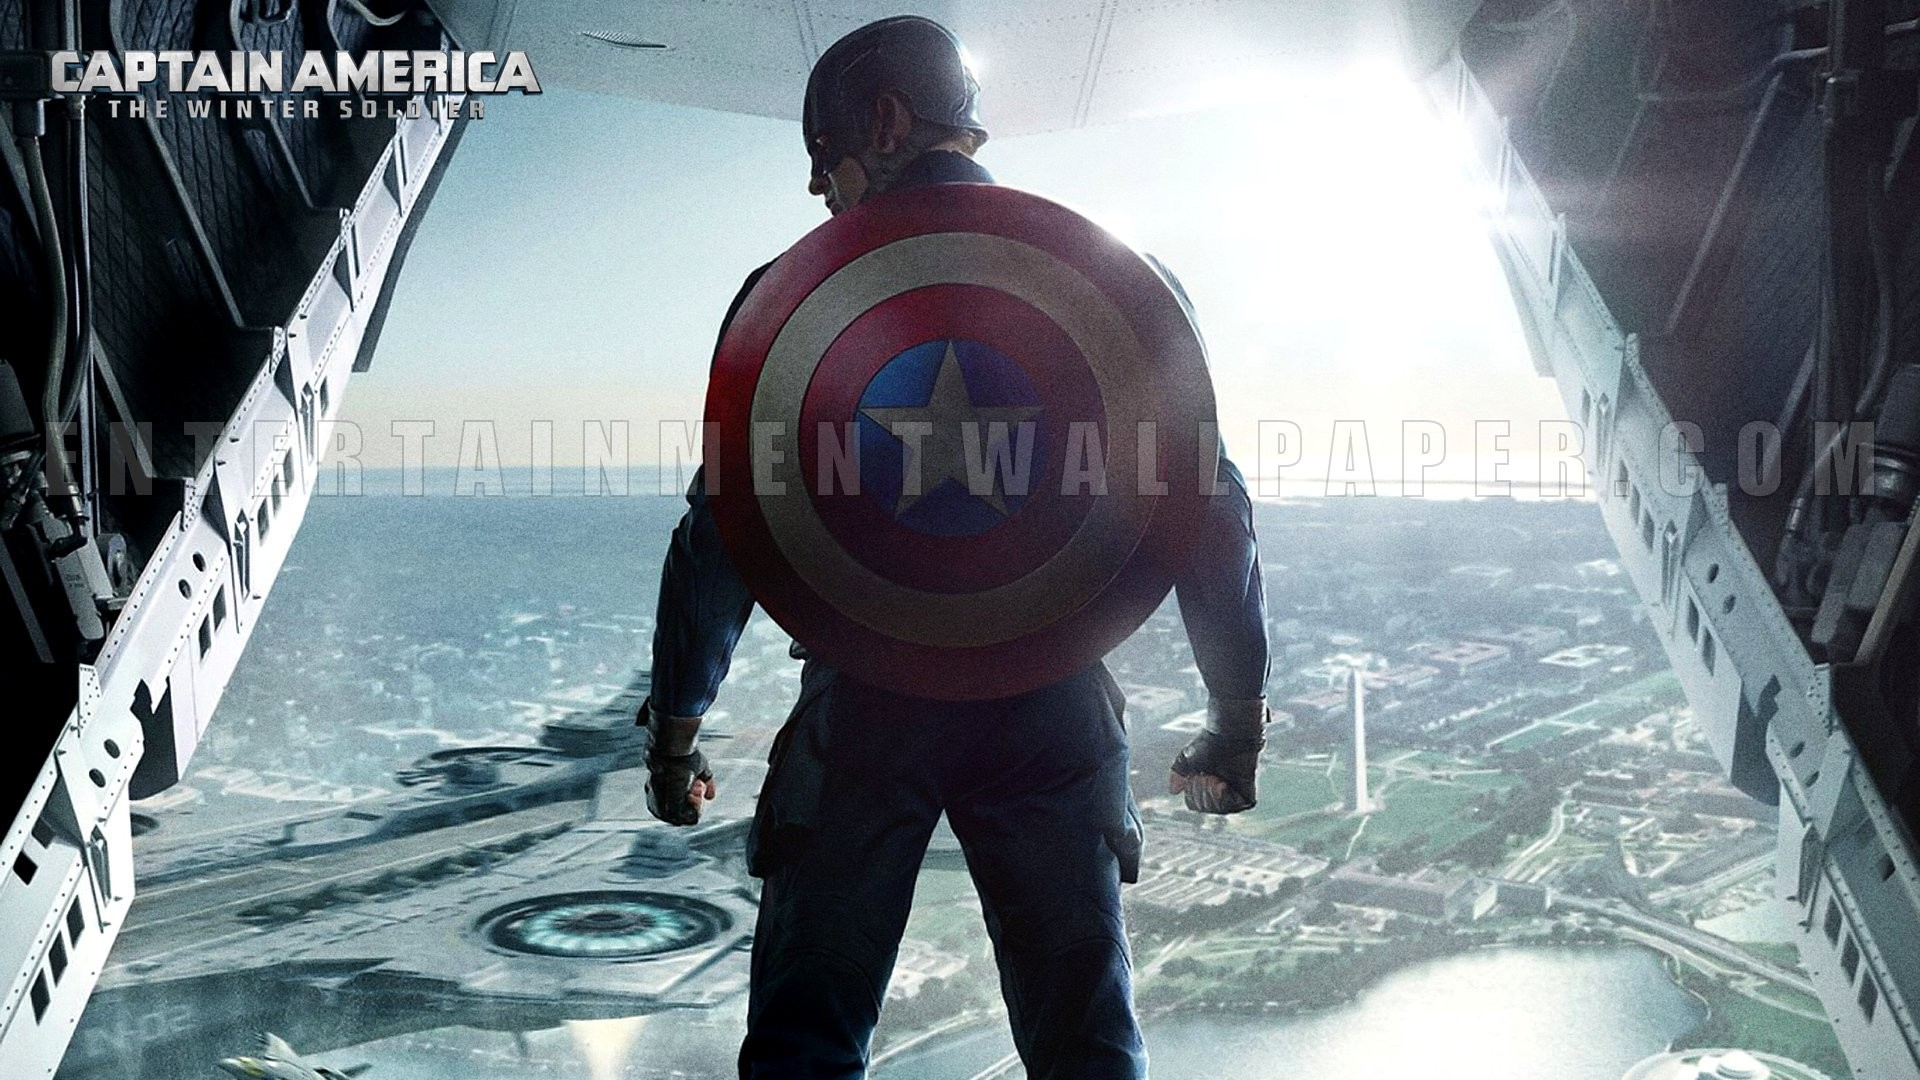 1920x1080 Captain America: The Winter Soldier Wallpaper - Original size, download now.